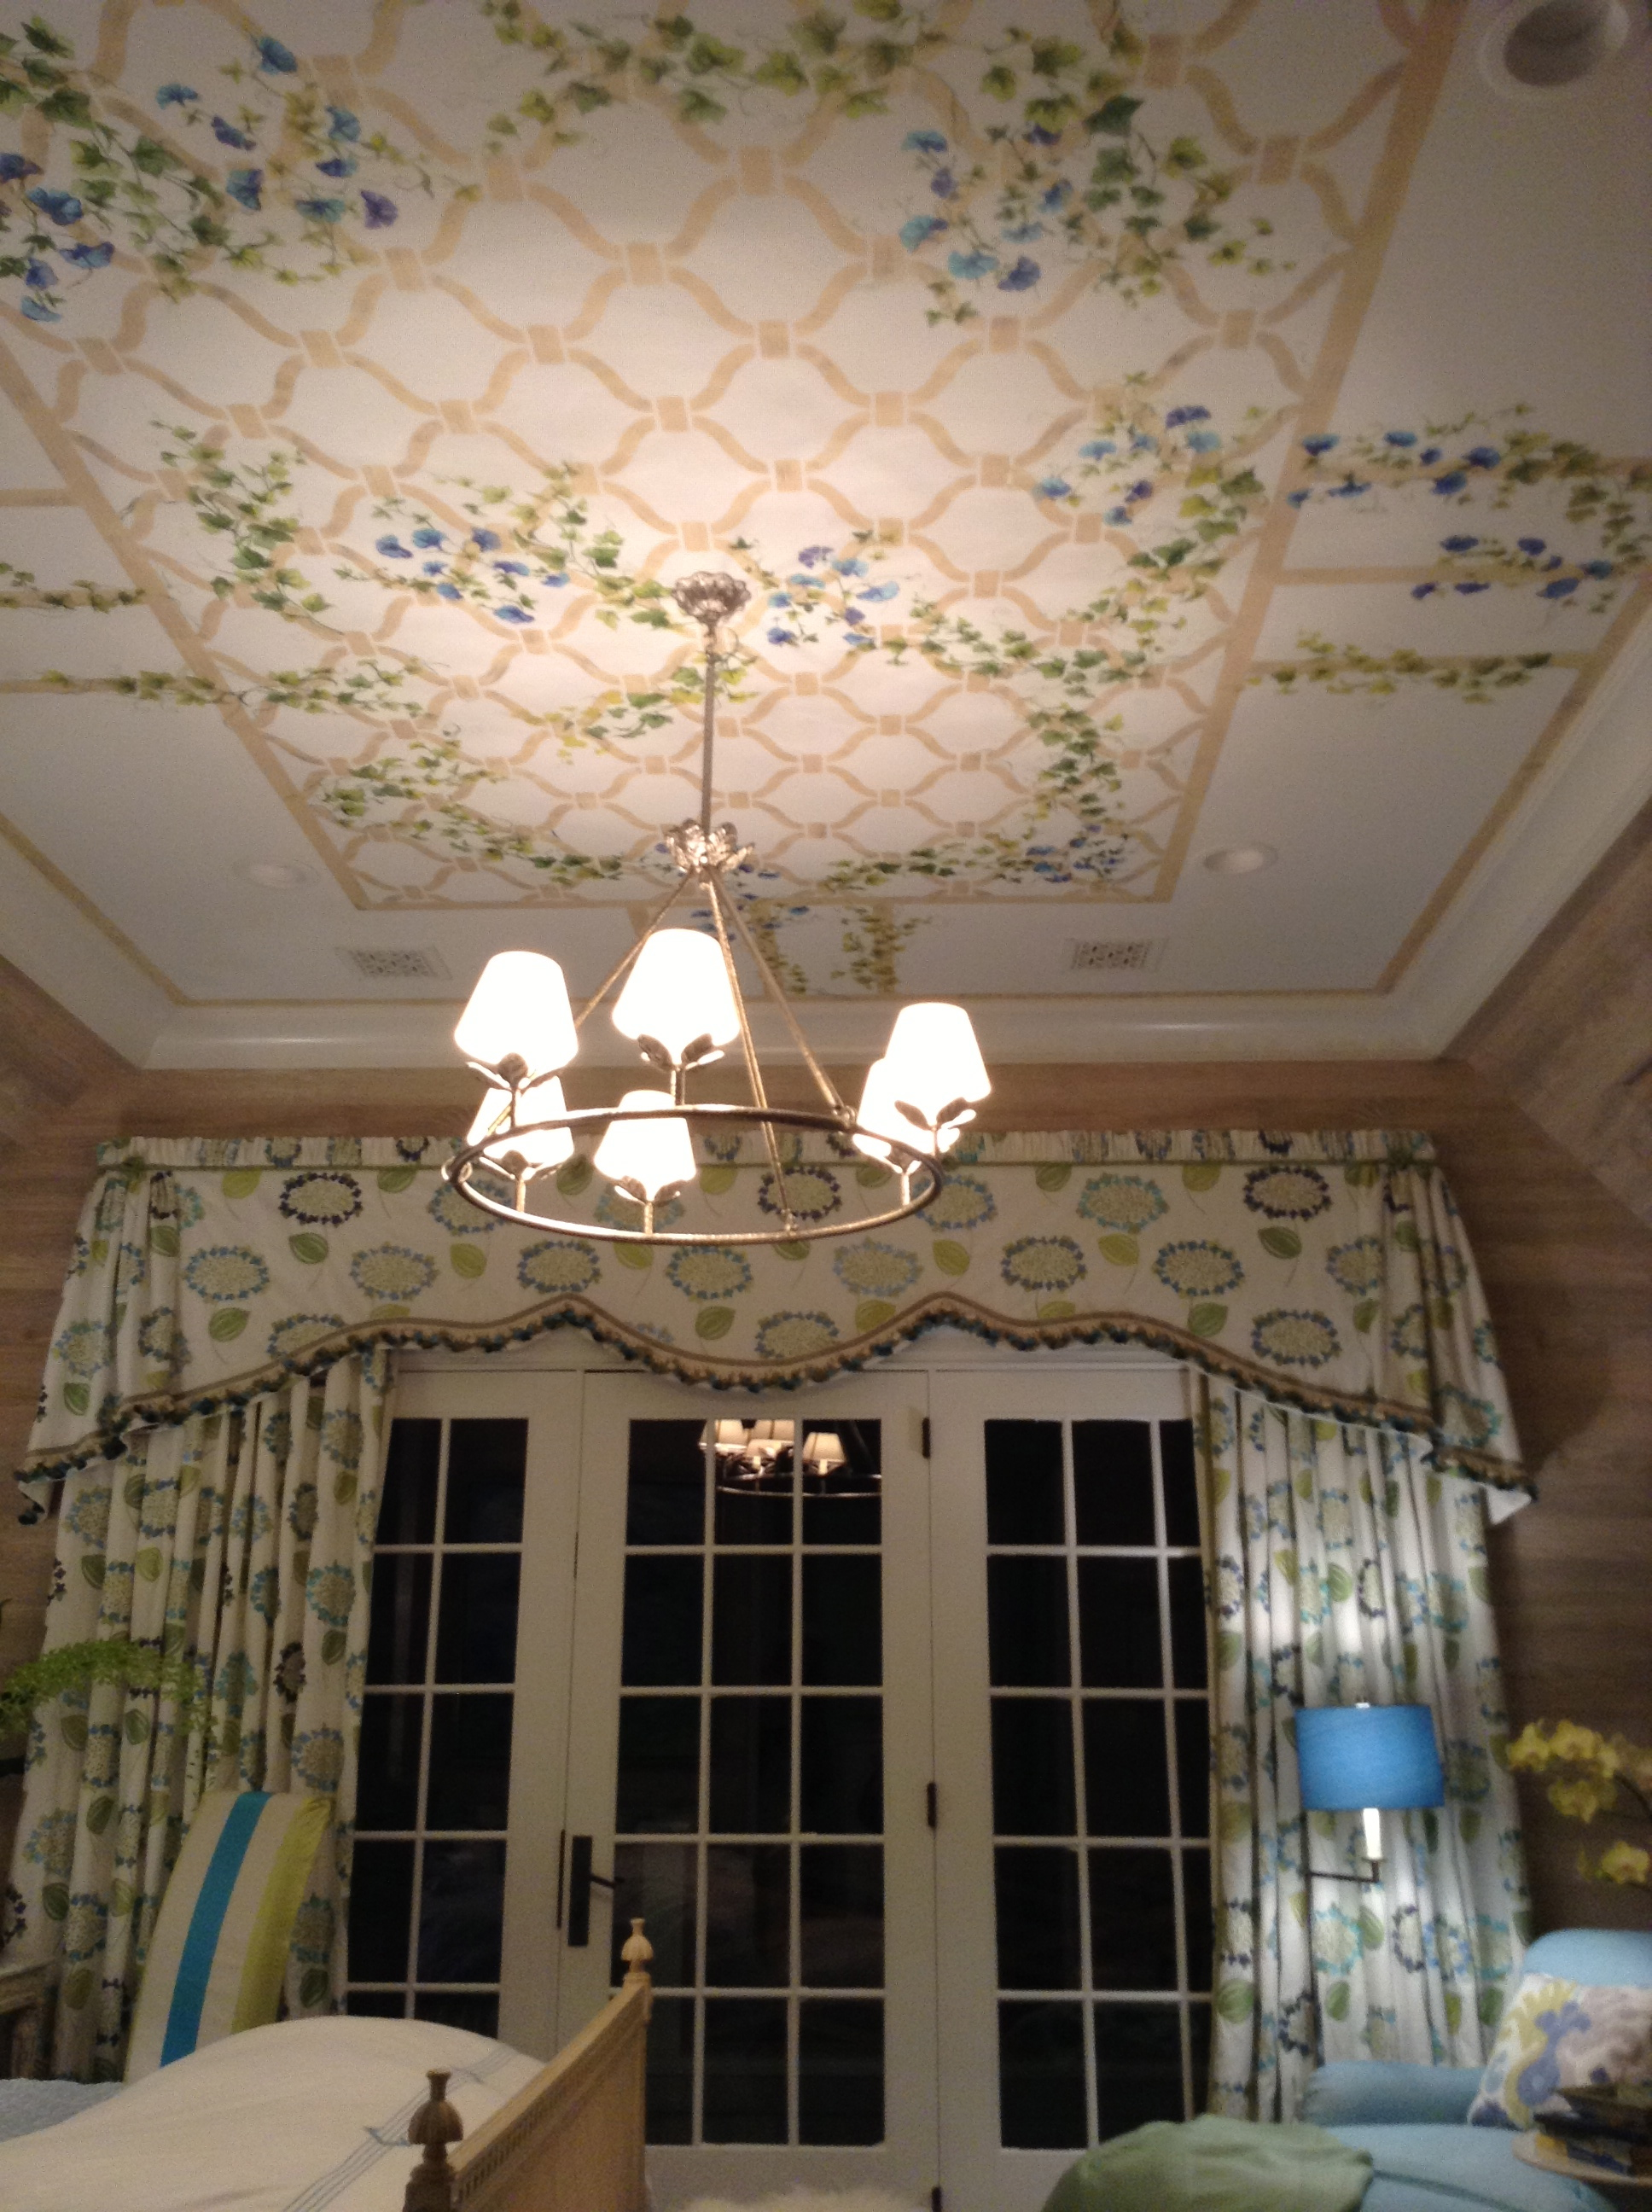 Ceiling stenciling